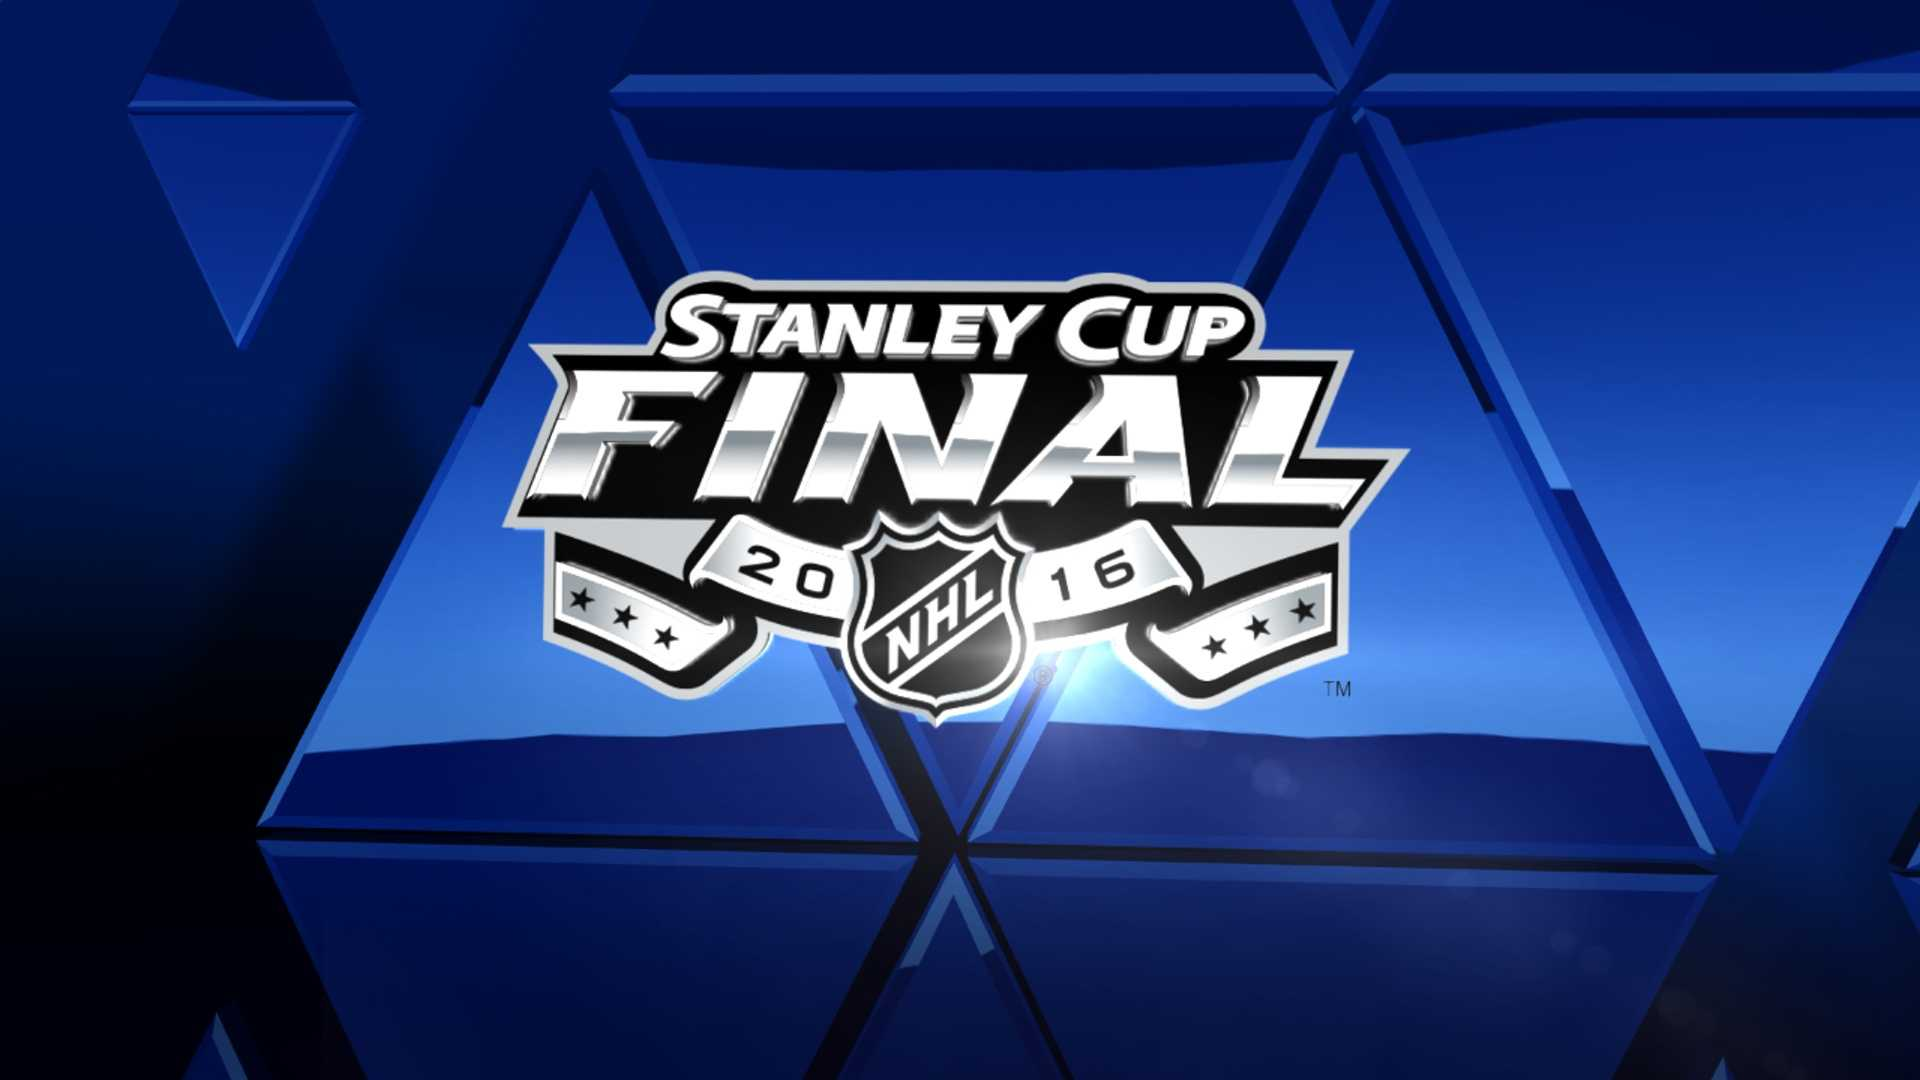 Stanley Cup Final 2016 logo